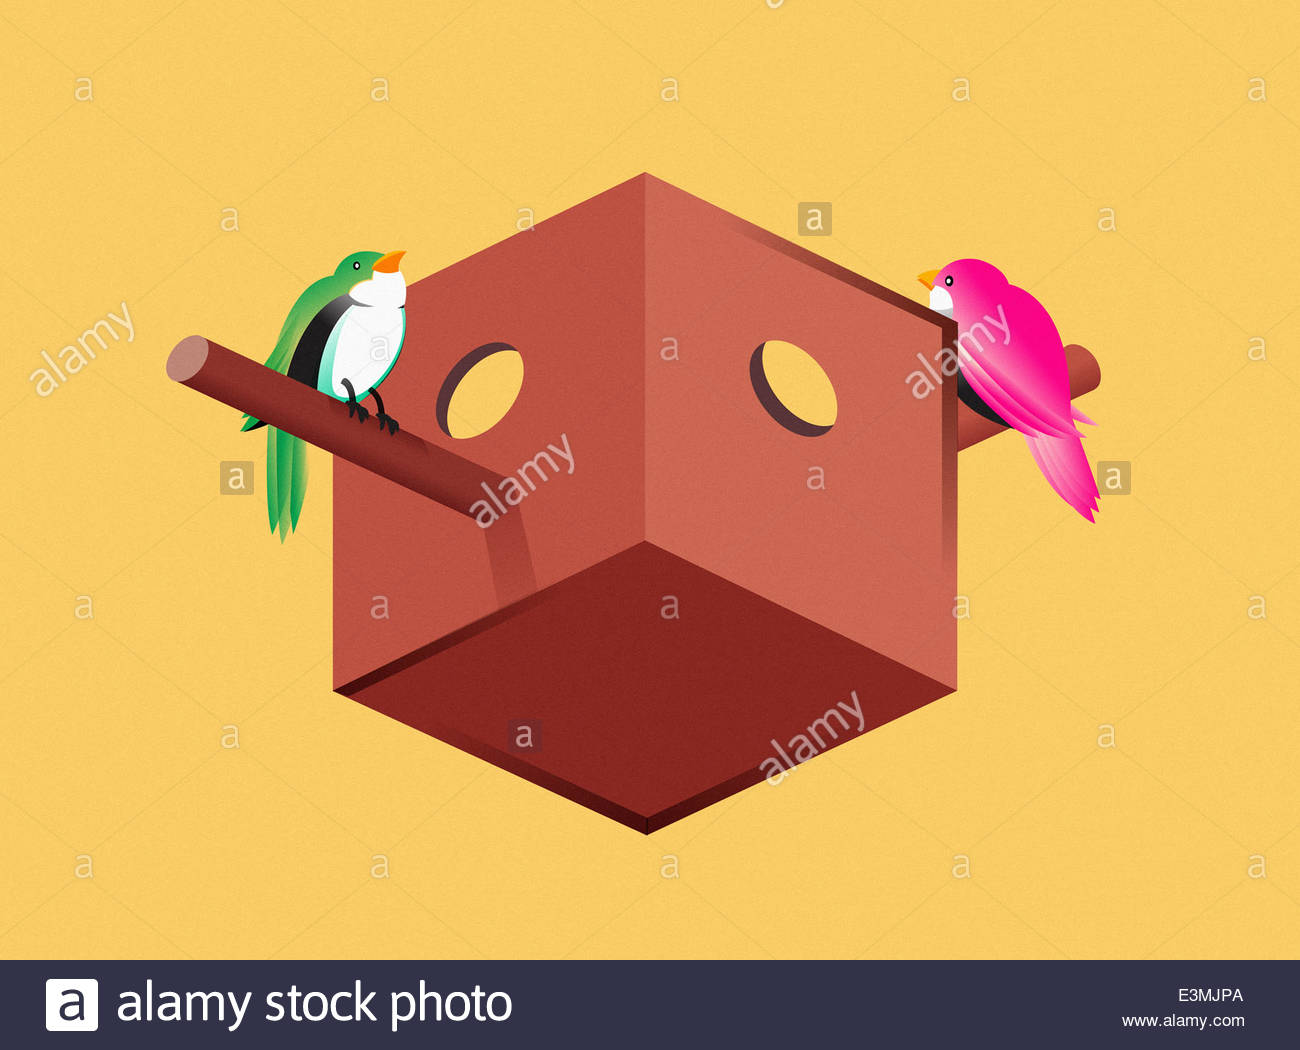 Birds on perches of optical illusion birdhouse - Stock Image